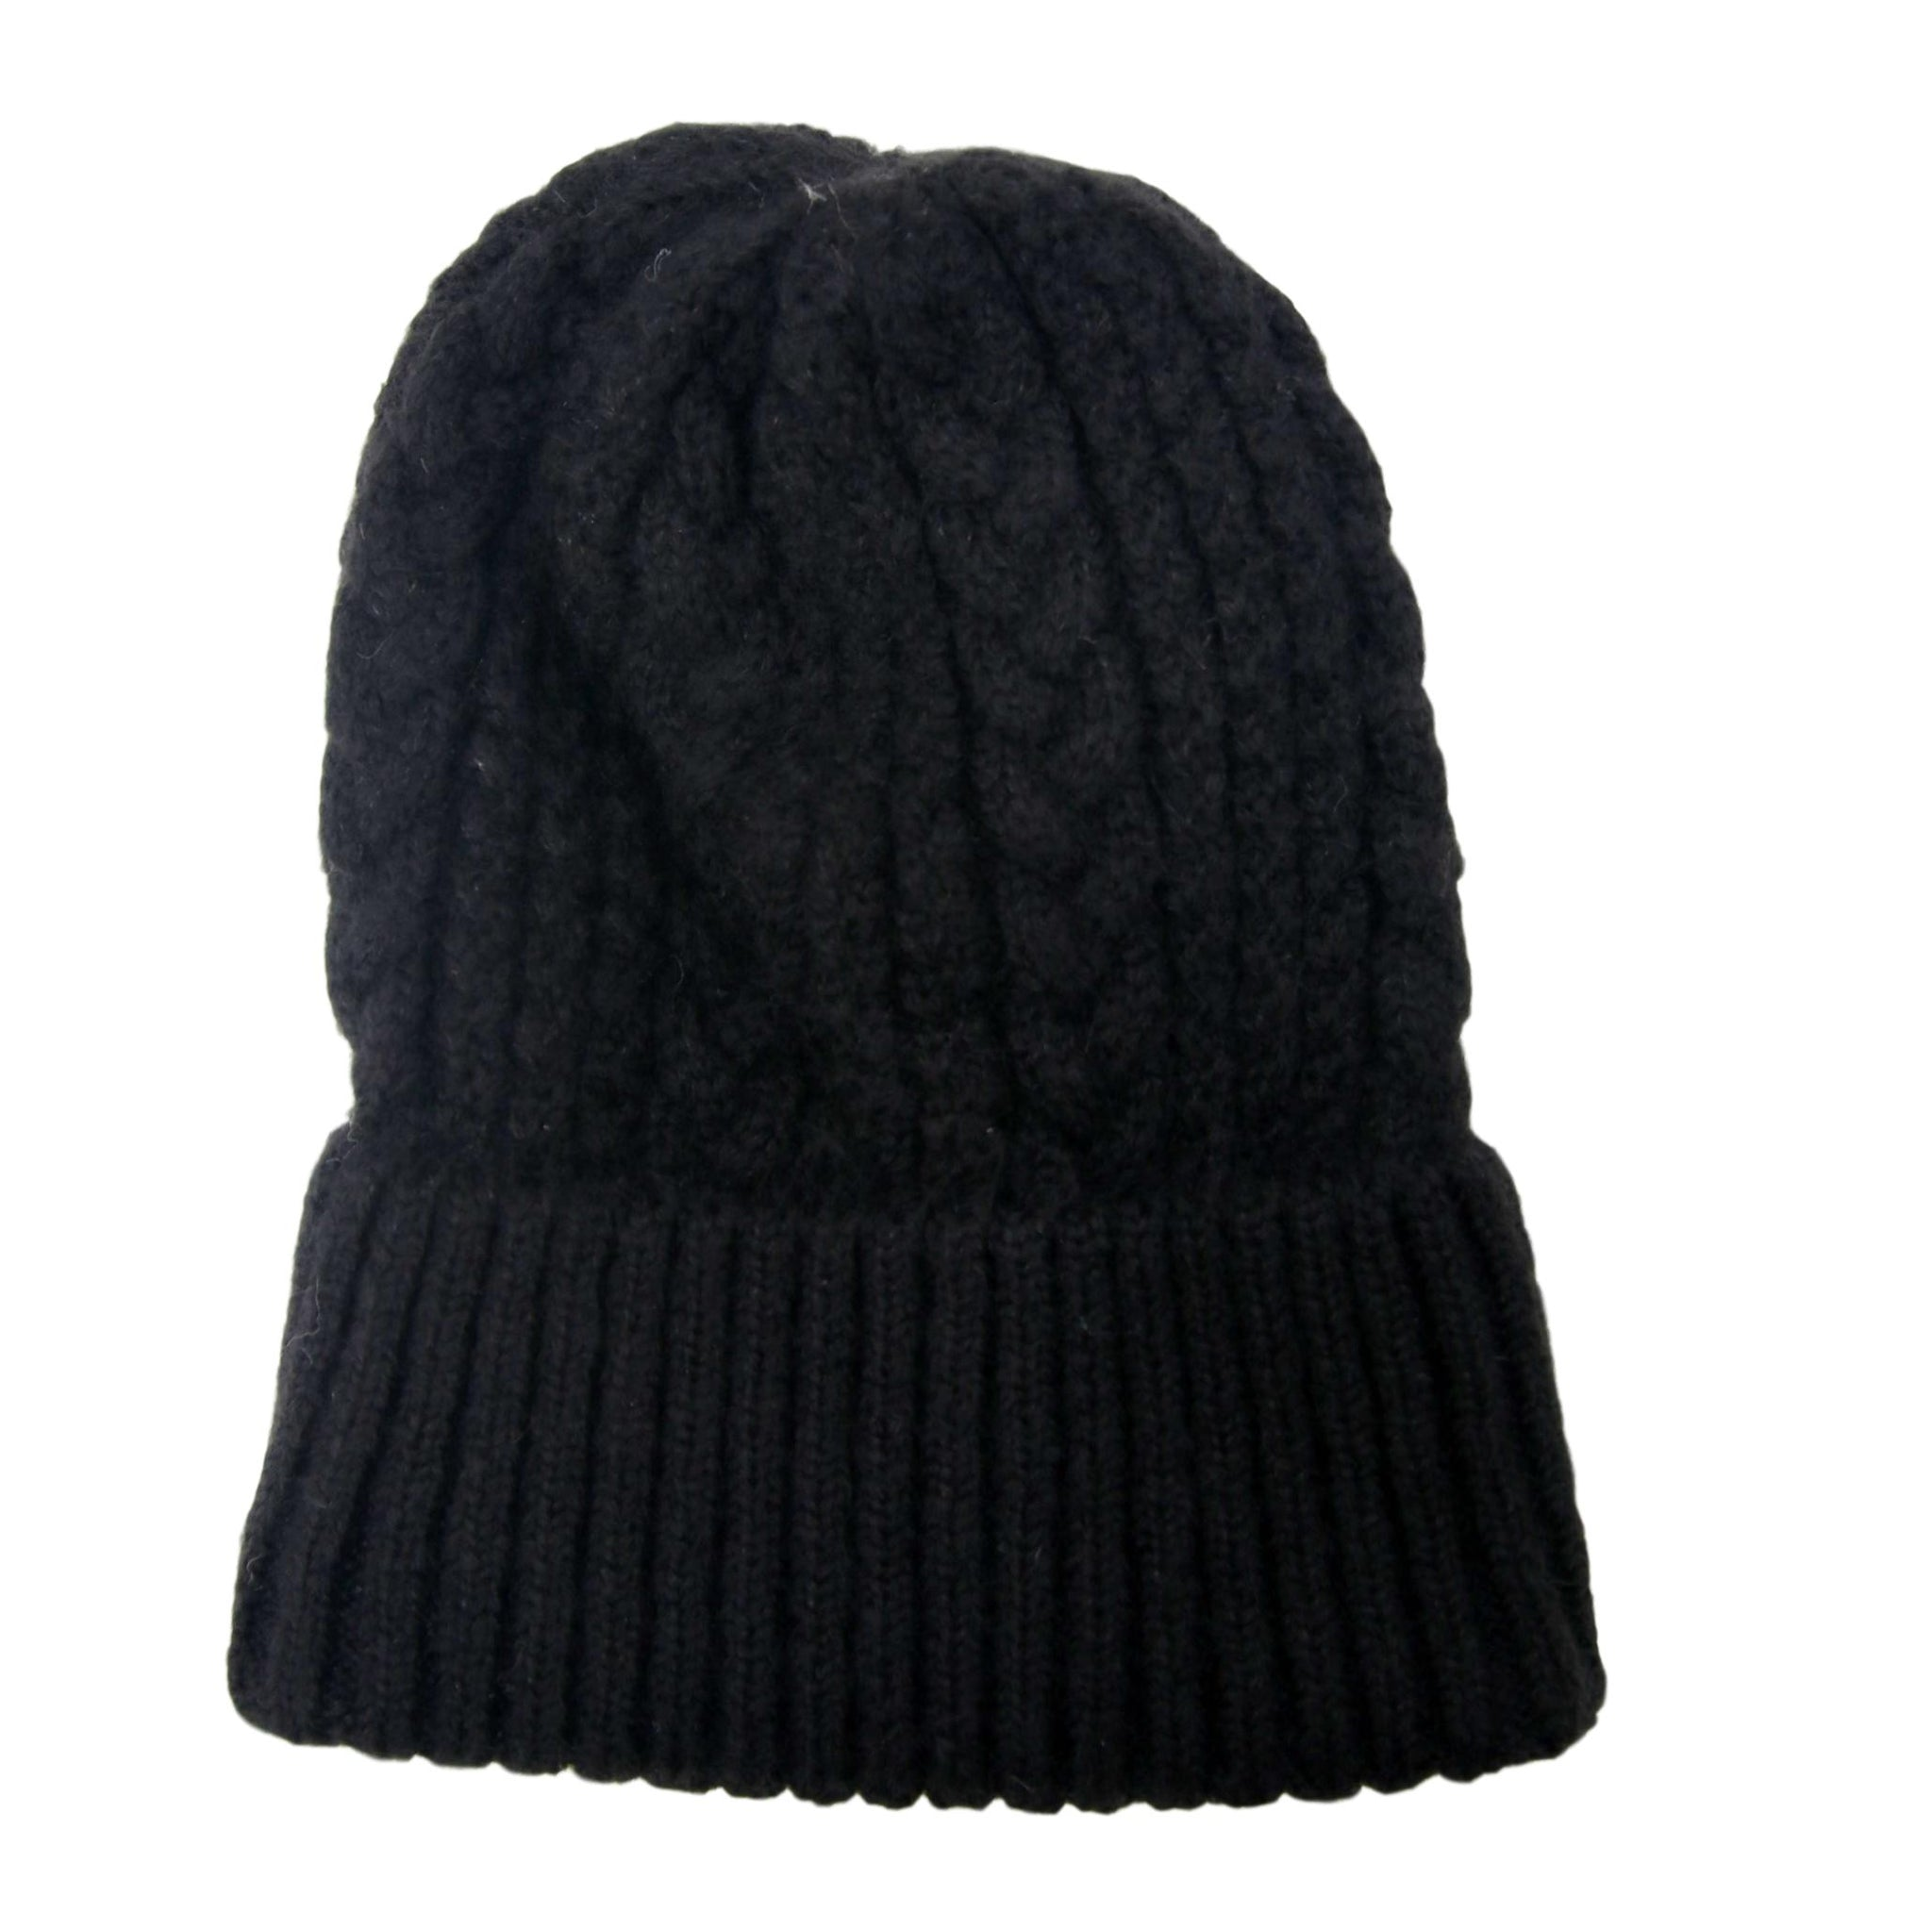 Black Cable Knit Beanie